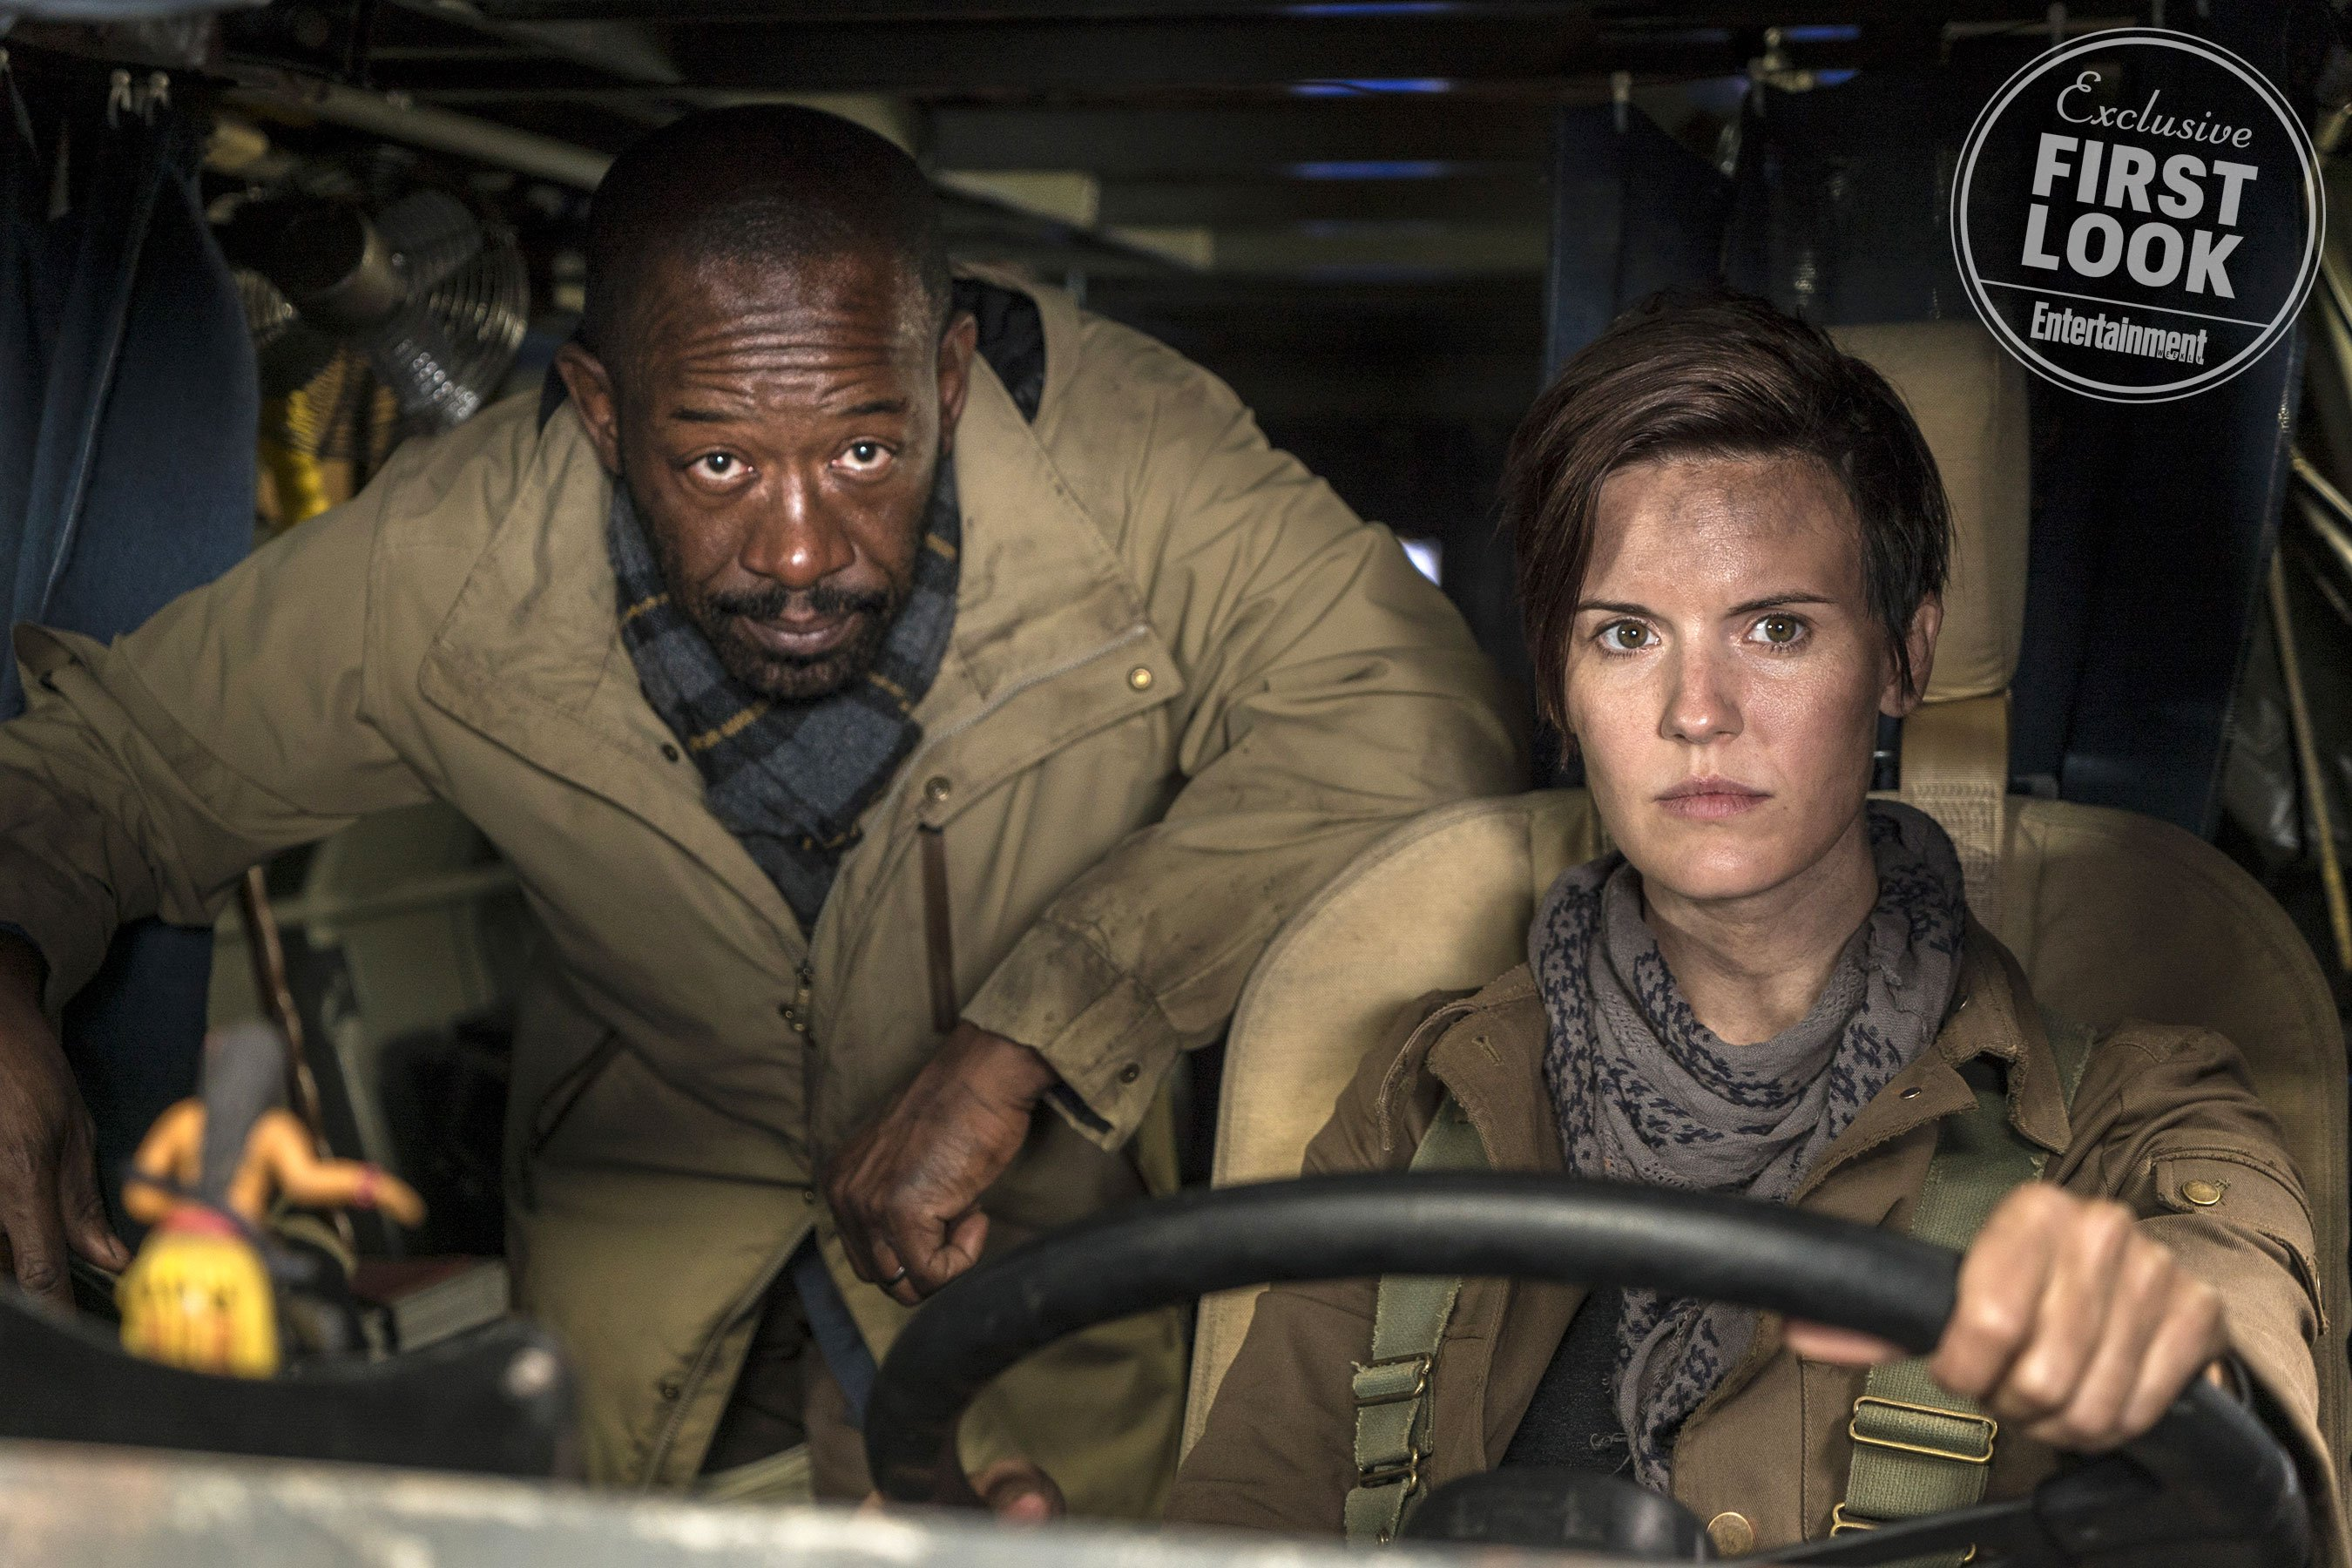 Fear the Walking Dead season 4 premiere date announced